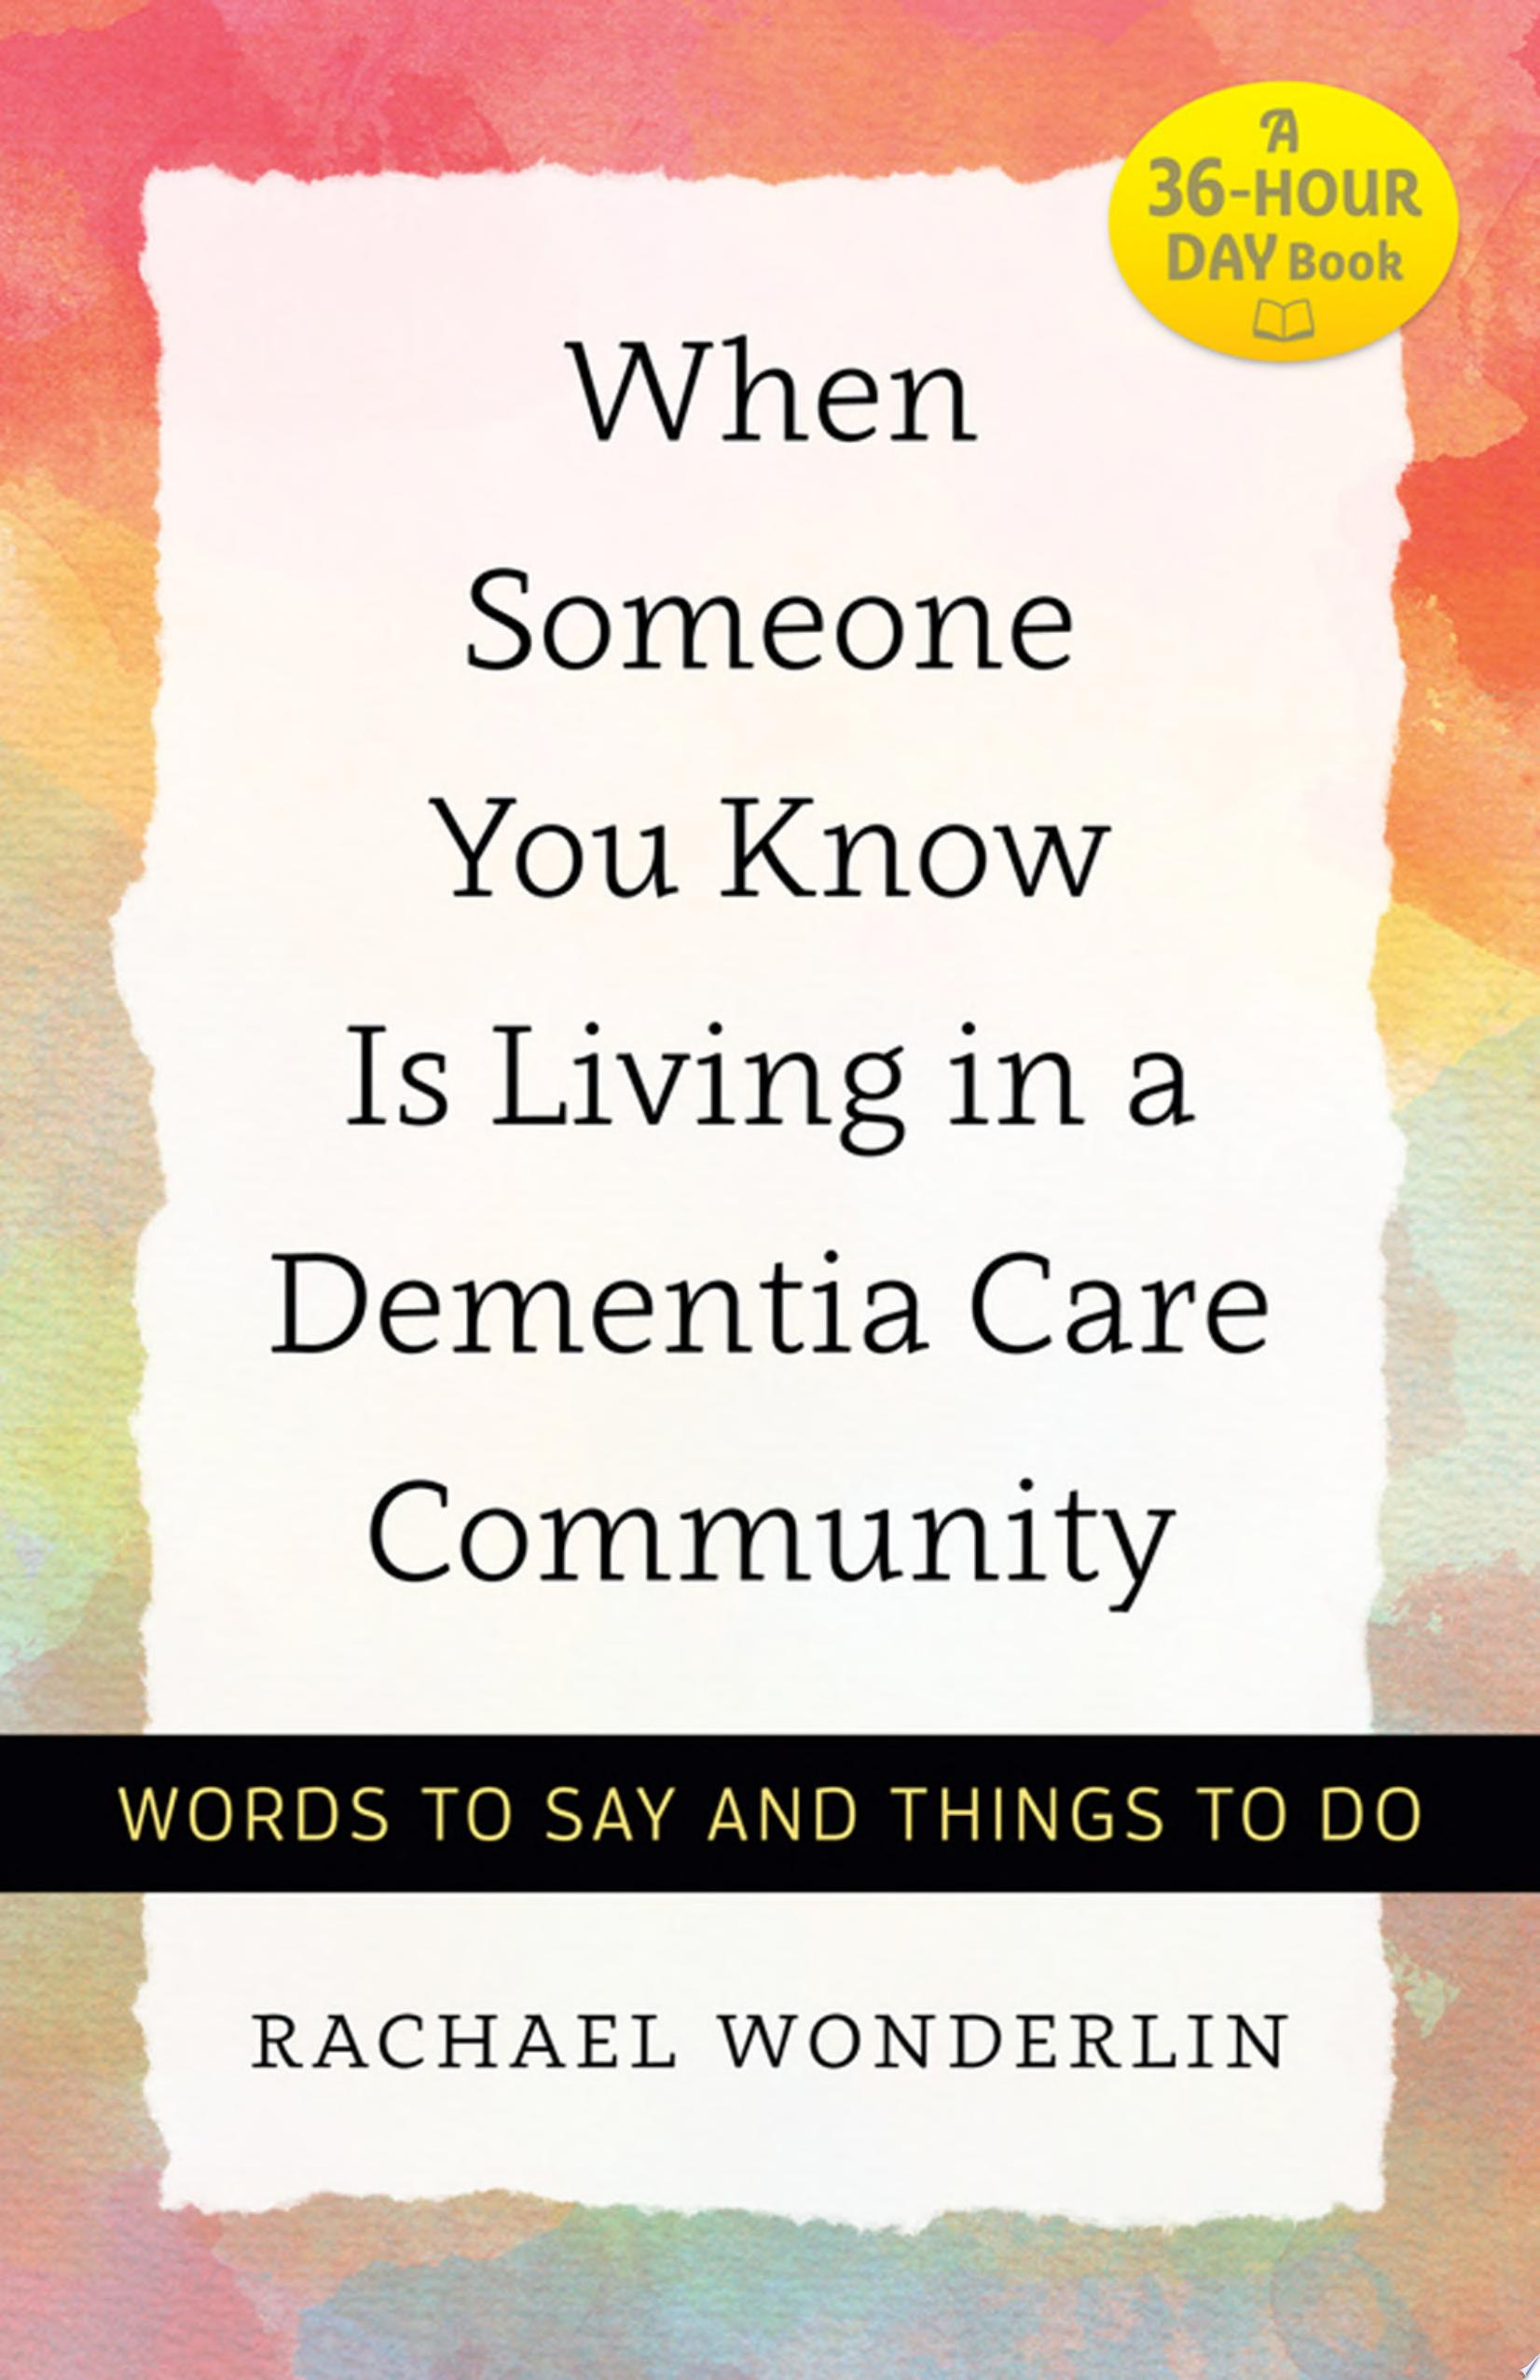 When Someone You Know Is Living in a Dementia Care Community